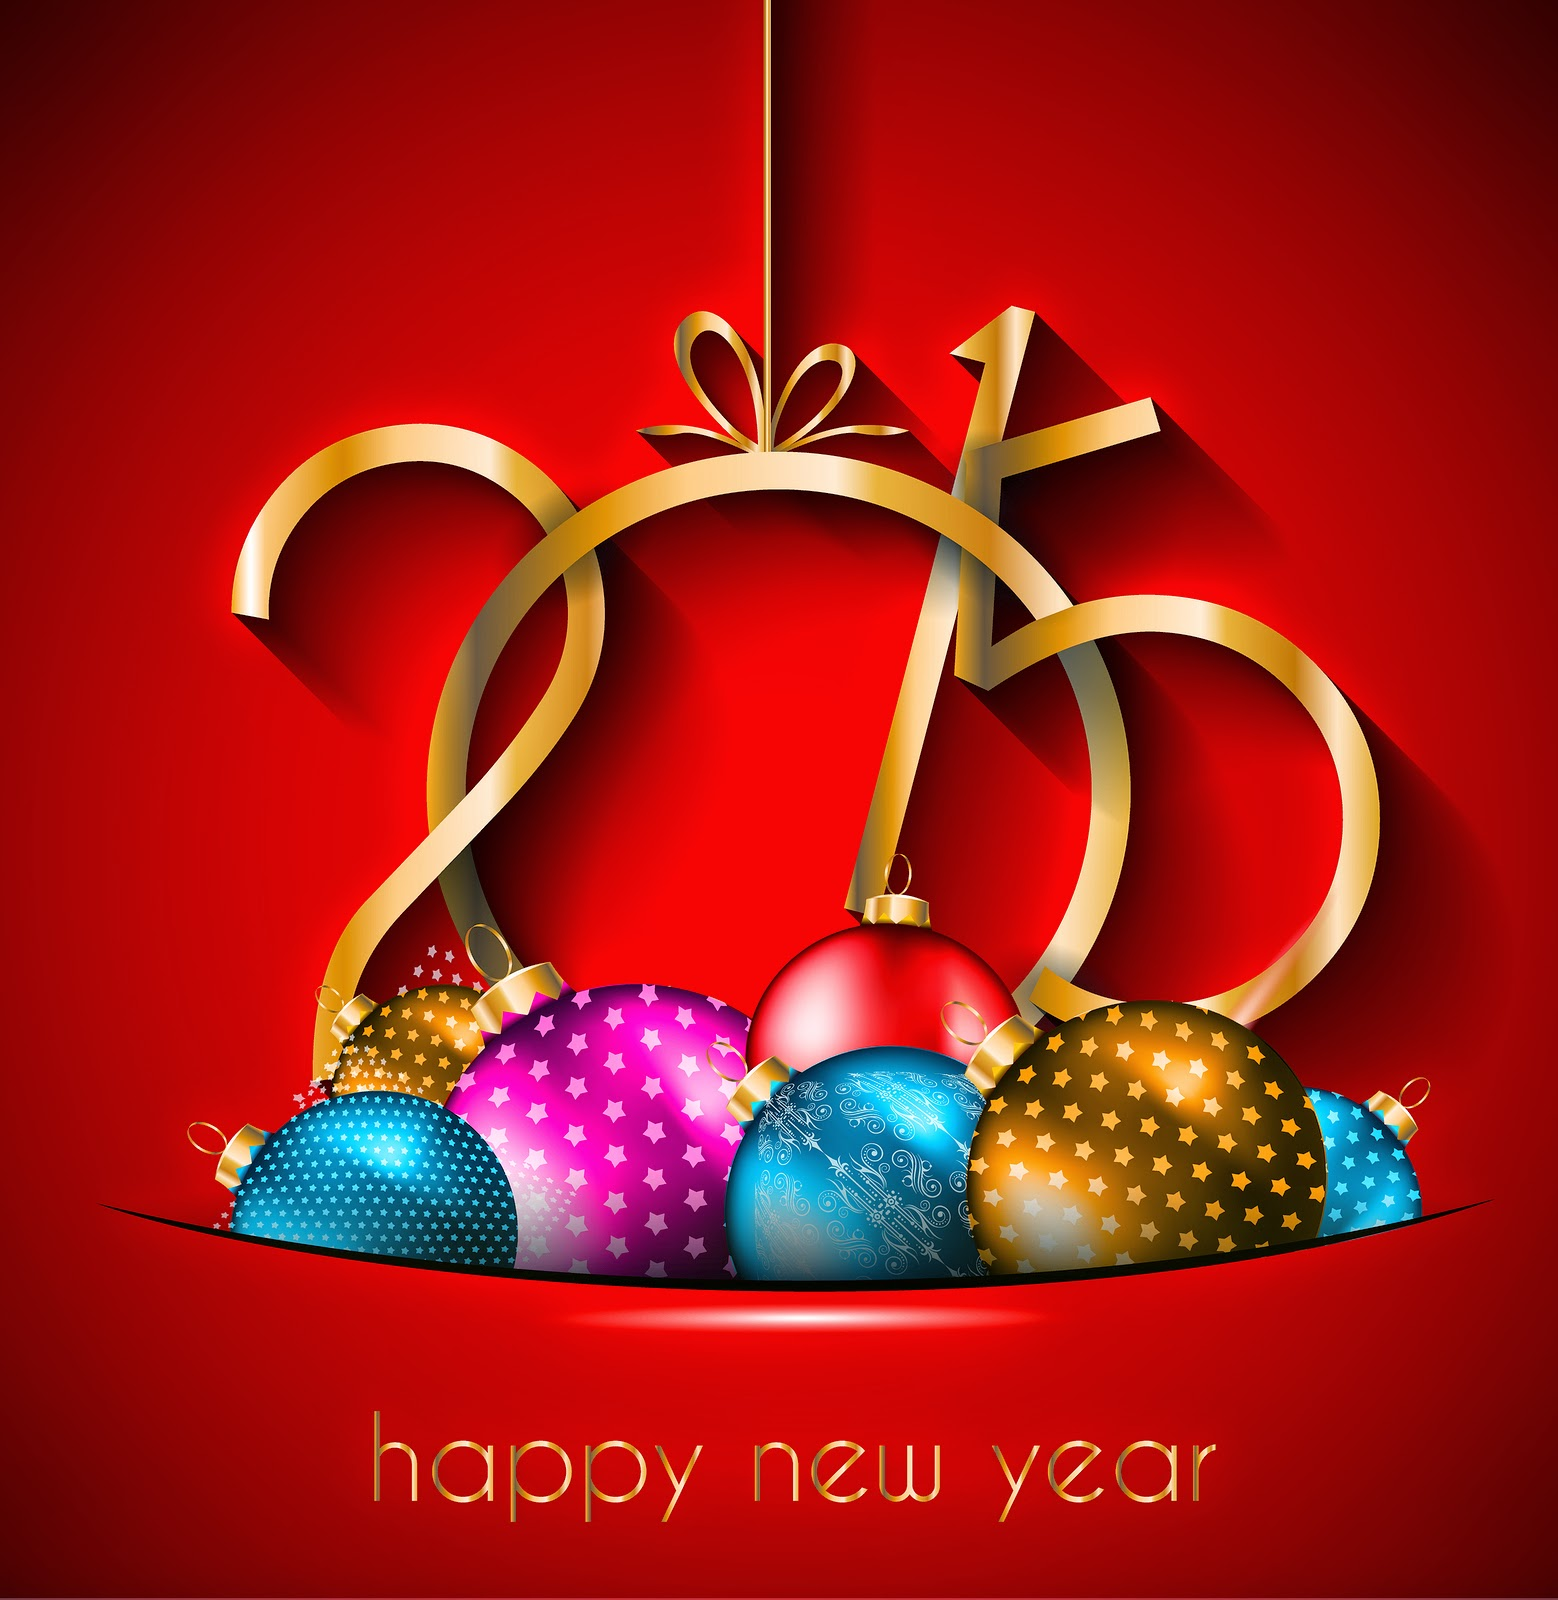 Happy New Year Help Change The World The Future Of The County Is